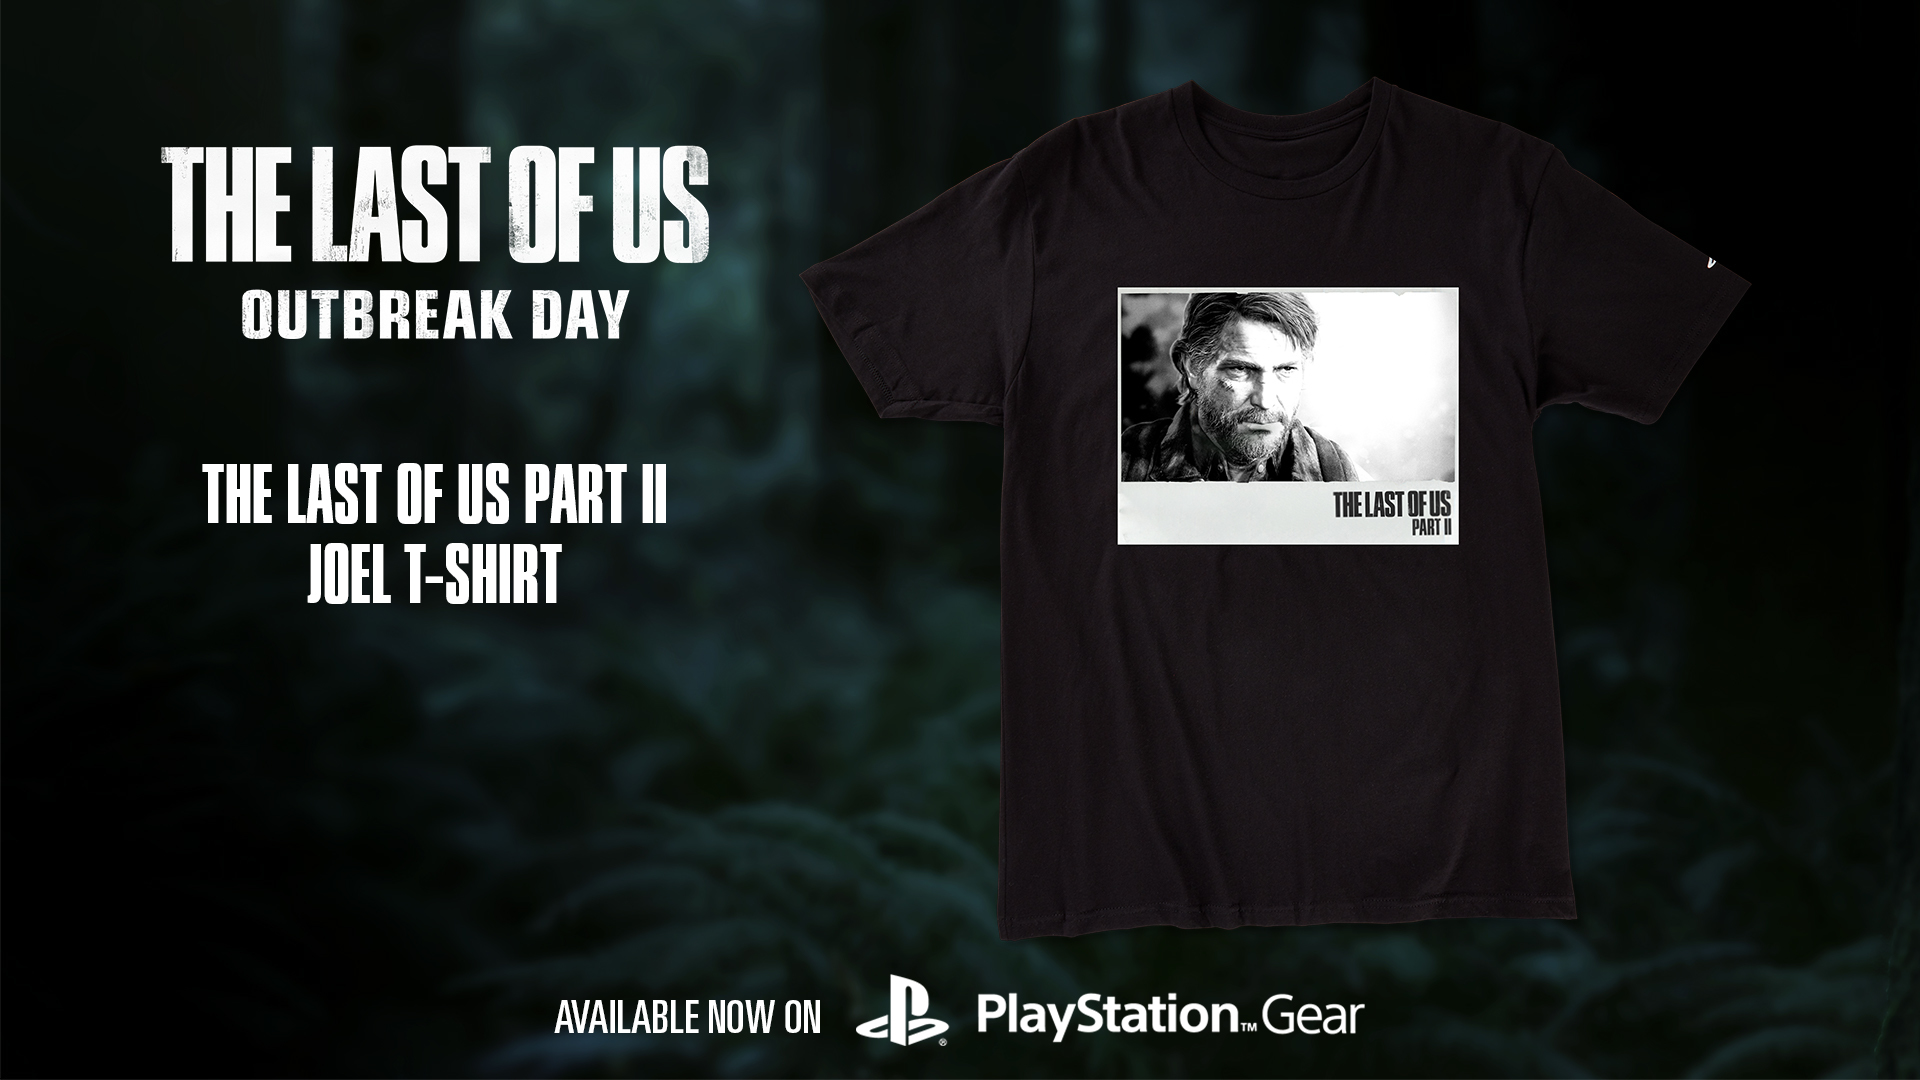 The Last of Us Part II: Outbreak Day 2019 - Image 3